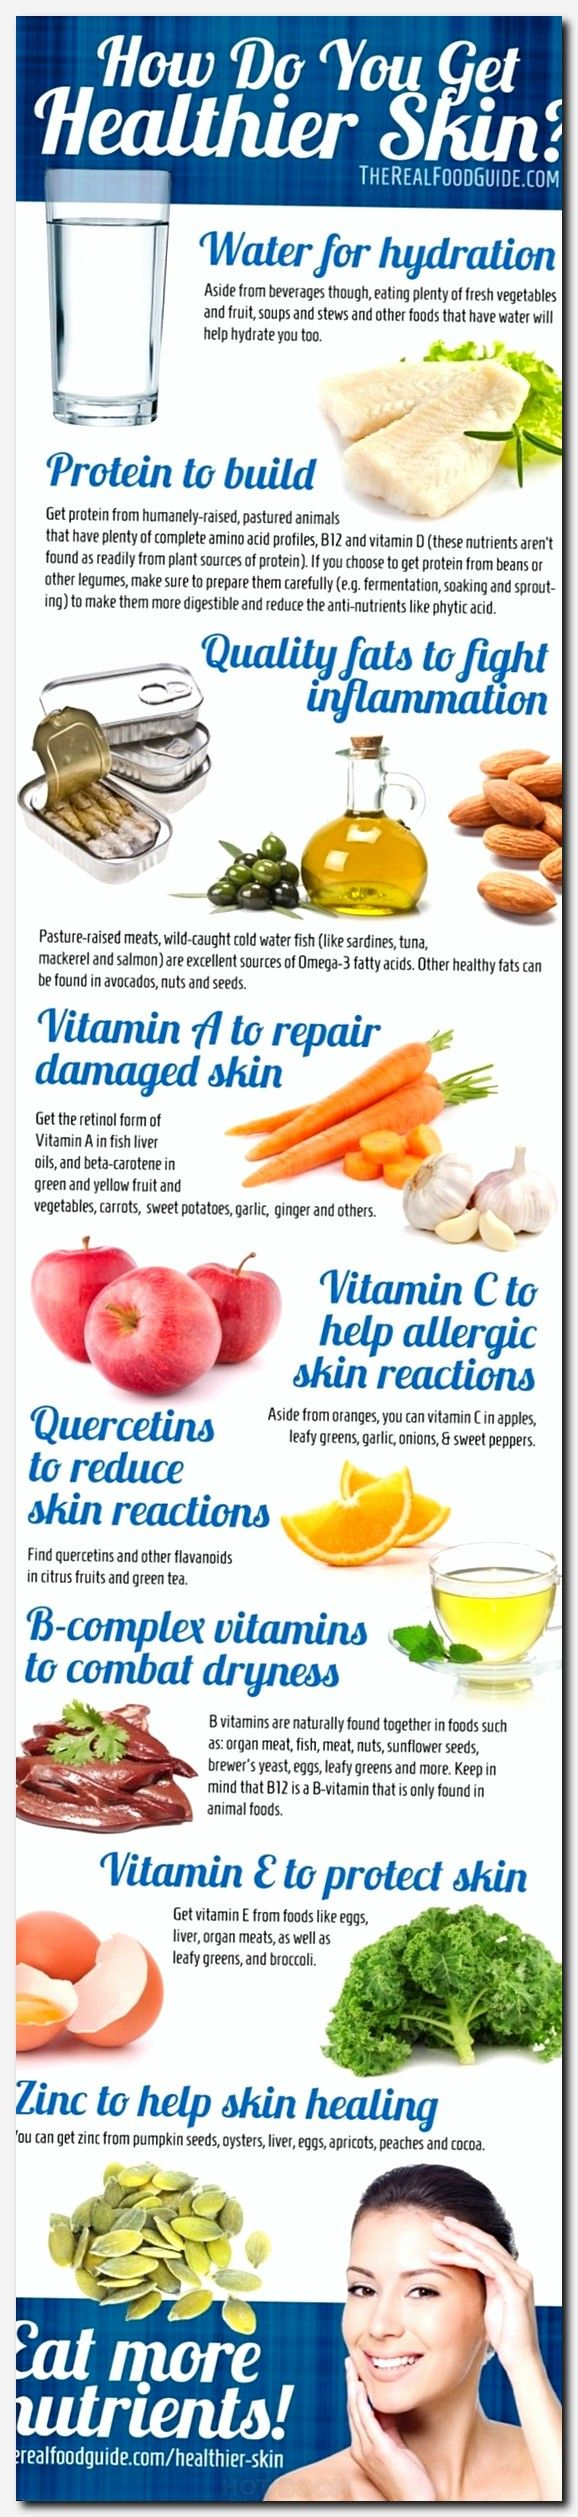 #skincare #skin #care how can i prevent pimples on my face naturally, hair and skin beauty salon, homemade skin care mask, sun damage to the skin, adult skin problems, facial specialist job description, youthful look, minecraft fr skin, doctor for the skin, good ways to get rid of spots, extremely itchy dry skin, elsa salon, careline services, skin spa chicago, what causes pimples on the face for men, reasons for dry skin on face